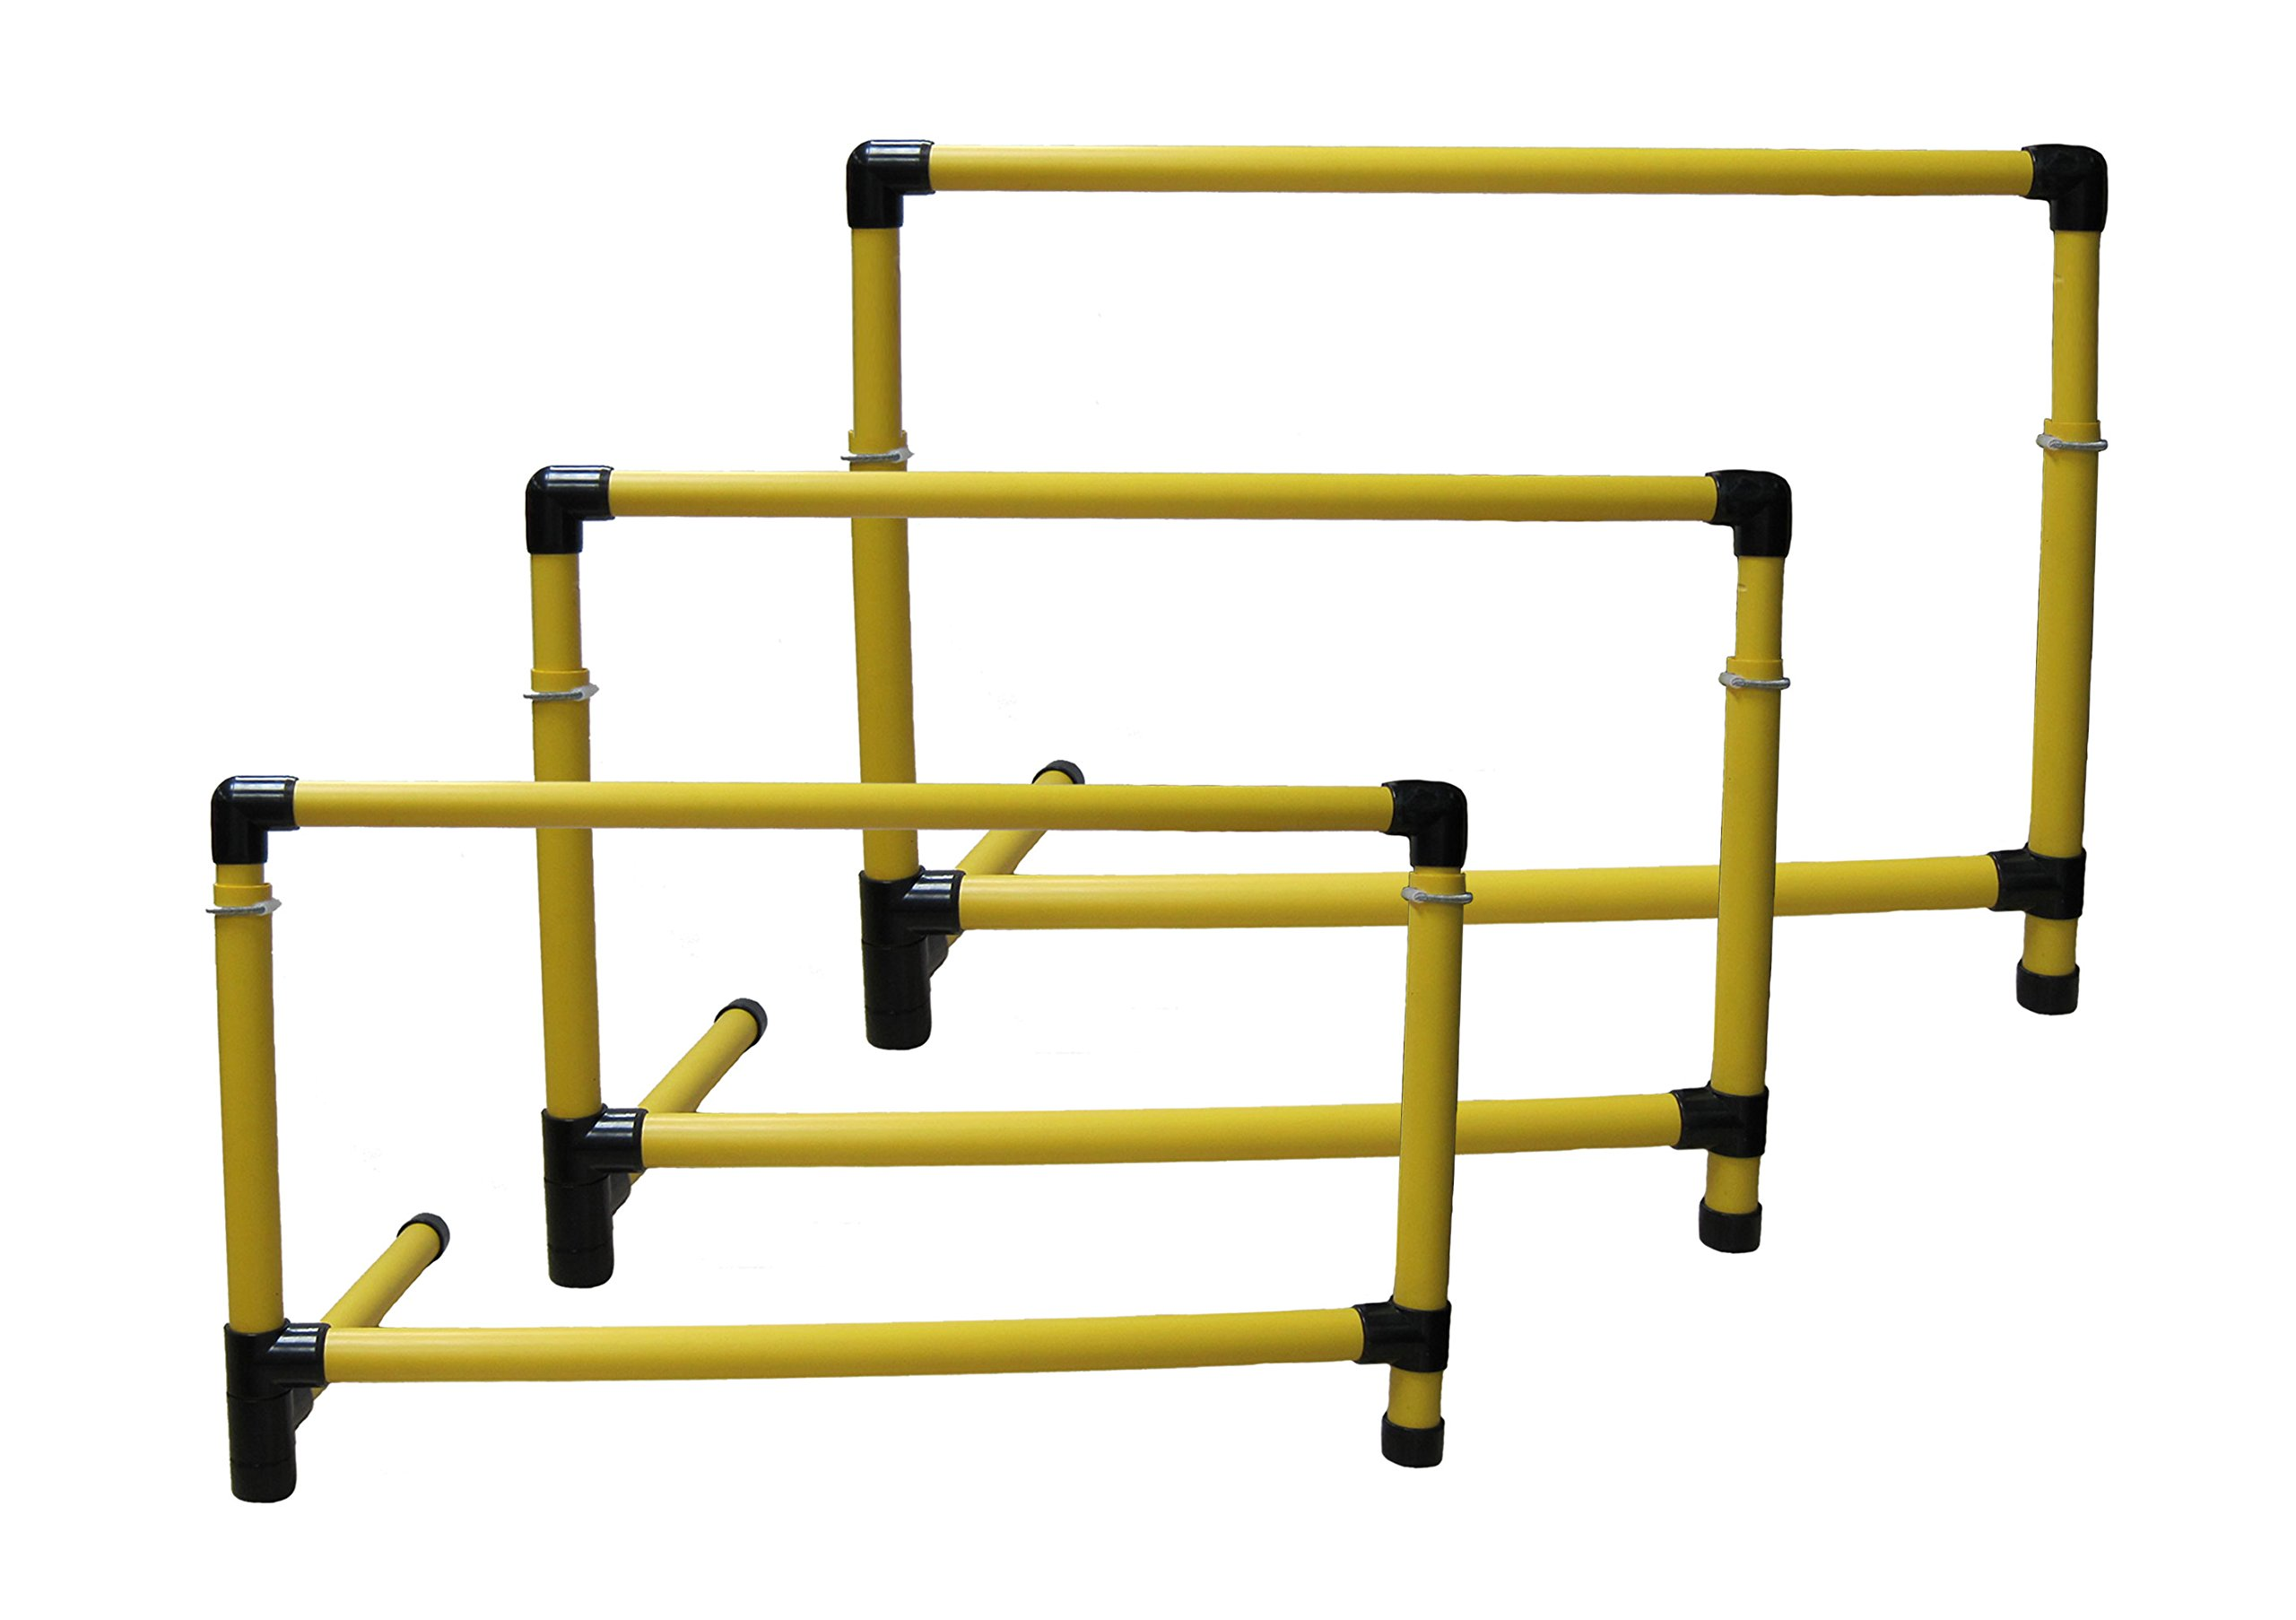 Sportime Adjust-A-Hurdles, 21 to 36 Inches, Set of 3